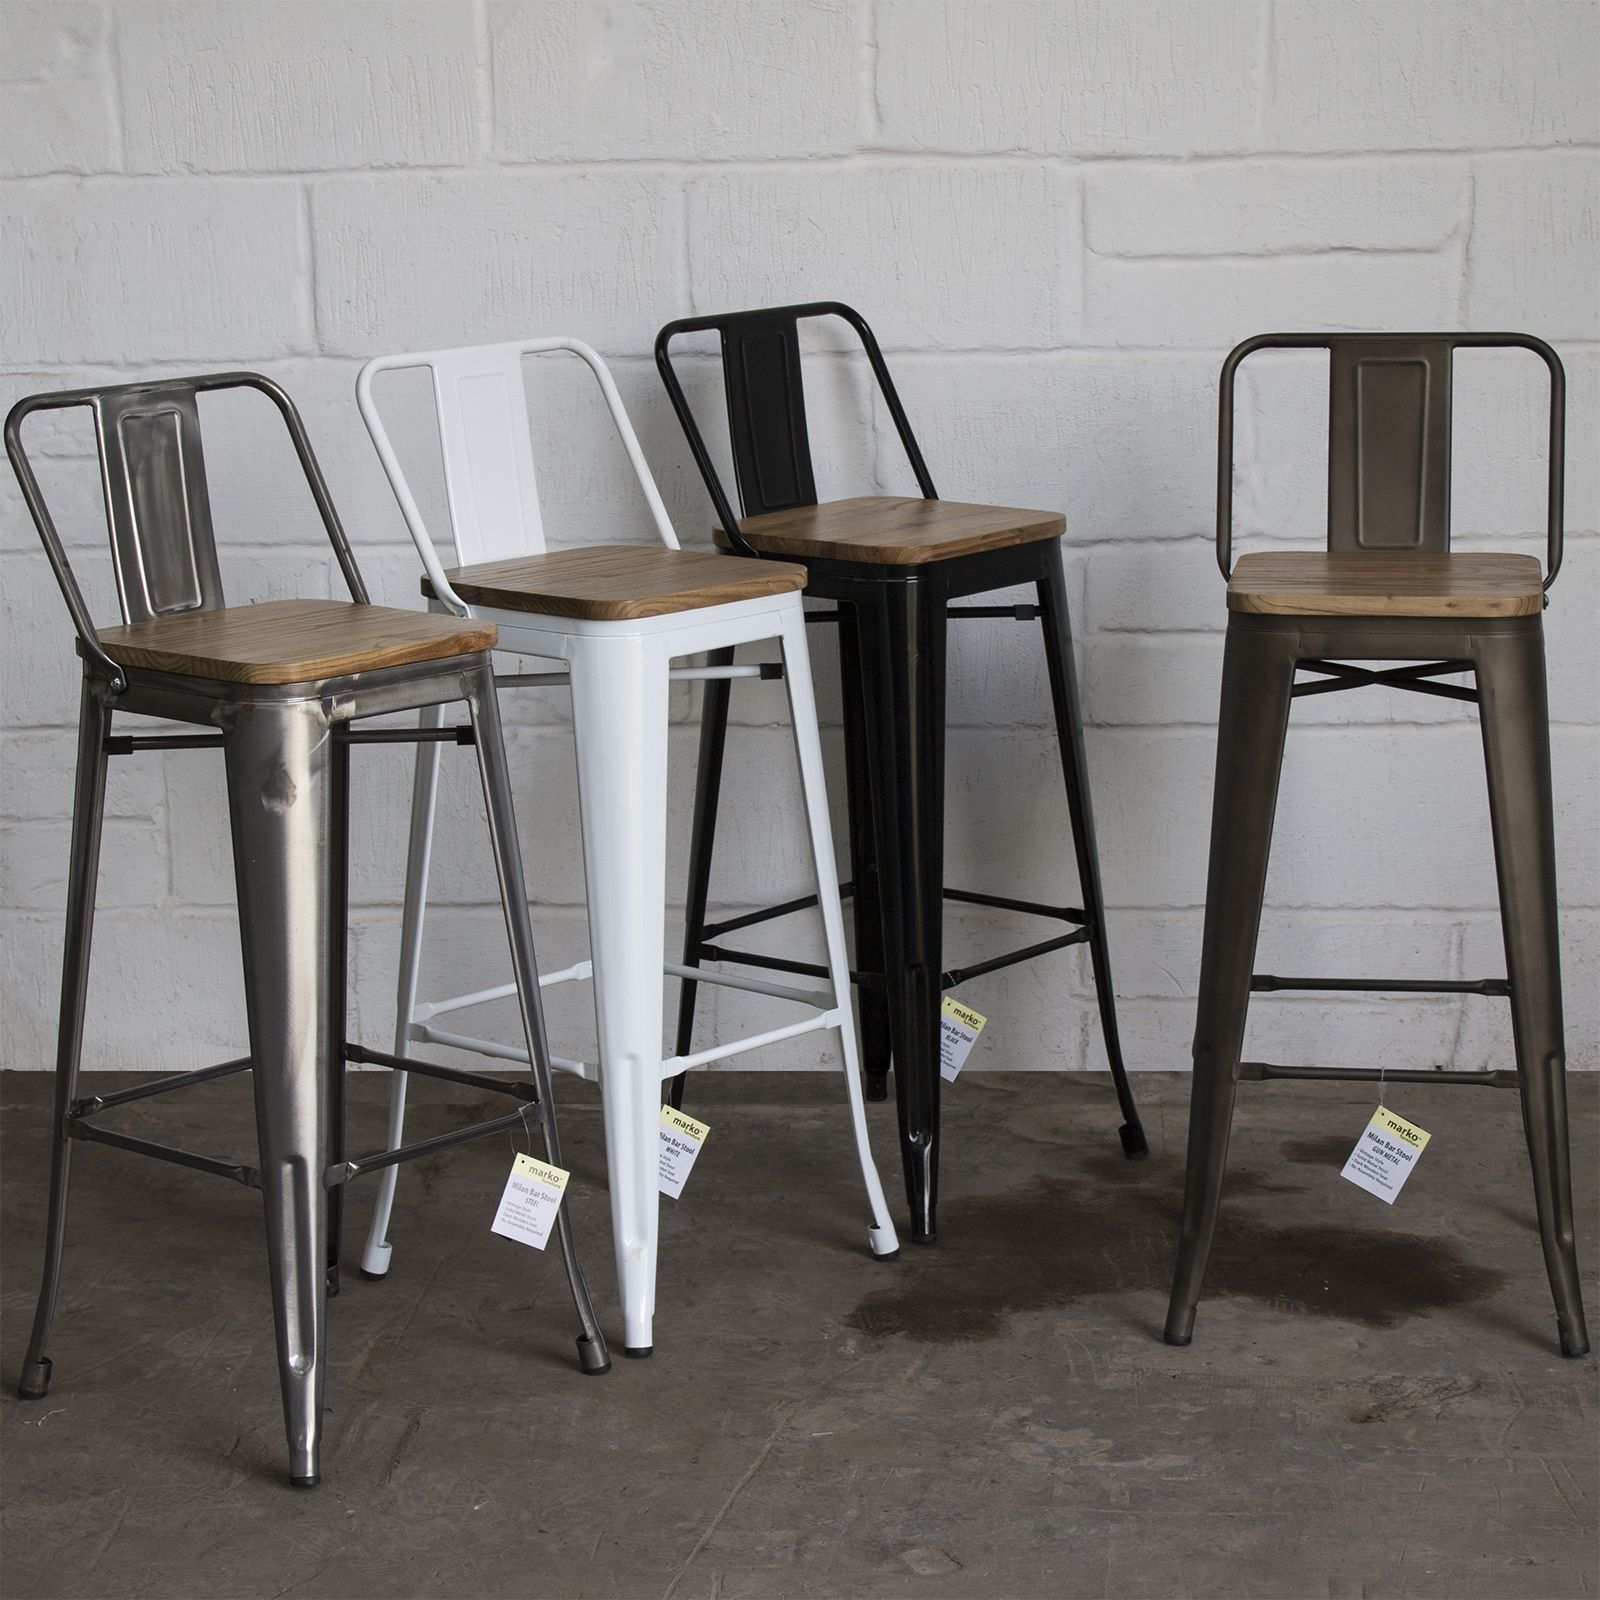 stools backs bar ebay clearance with used size of cheap sale large stool best for kitchen walmart